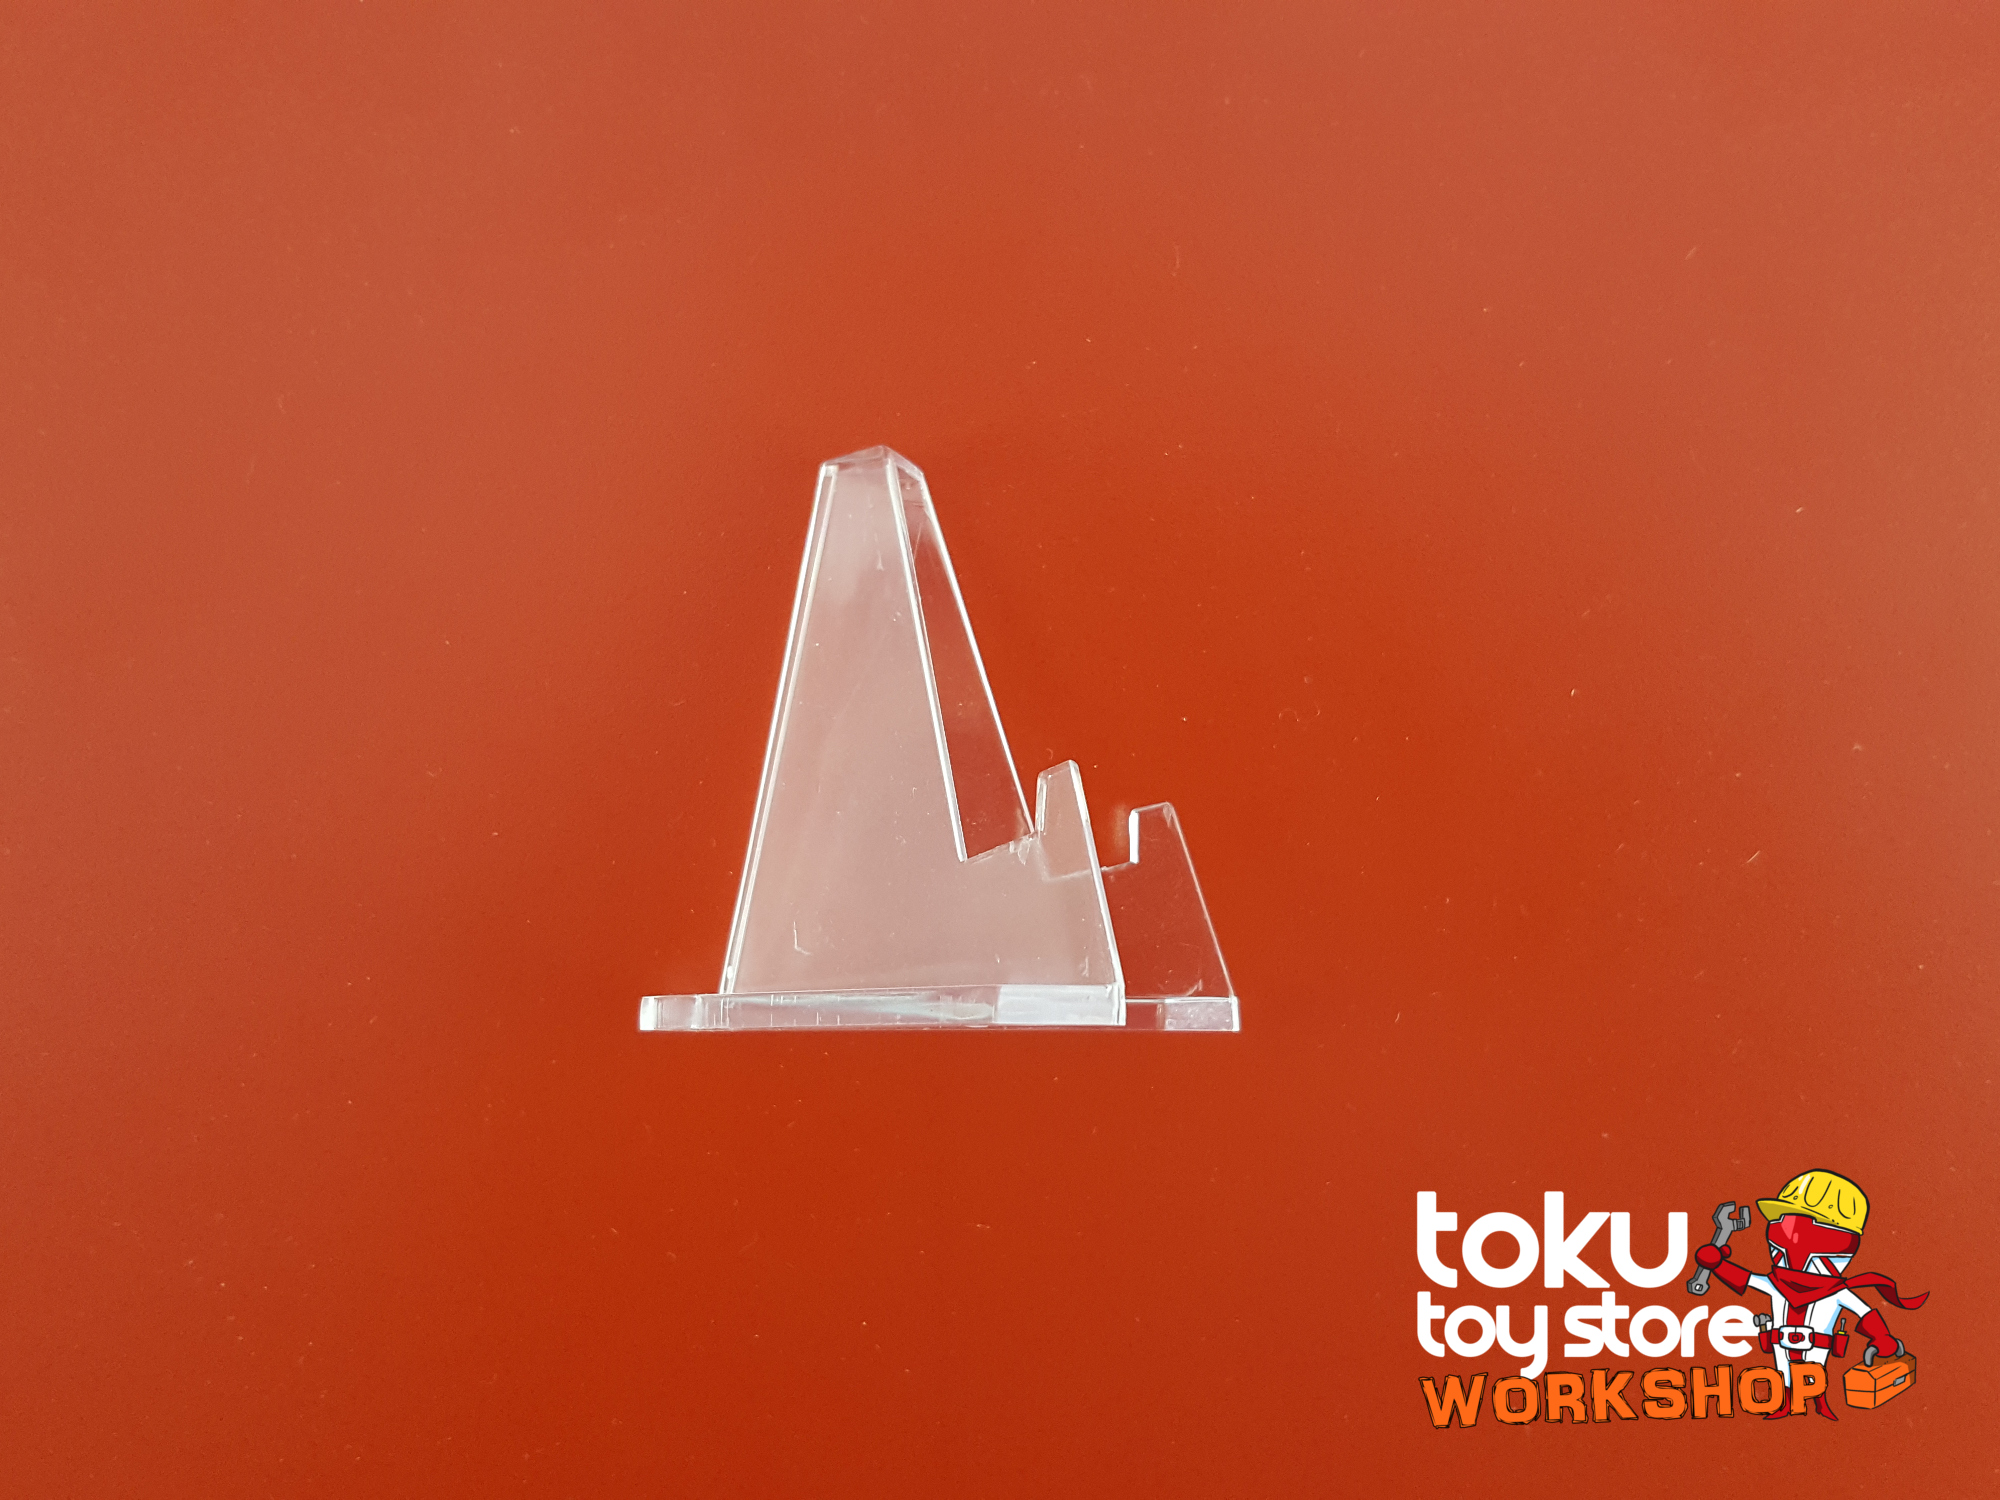 Exhibition Stand Gimmicks : Power coin o medal display stand toku toy store